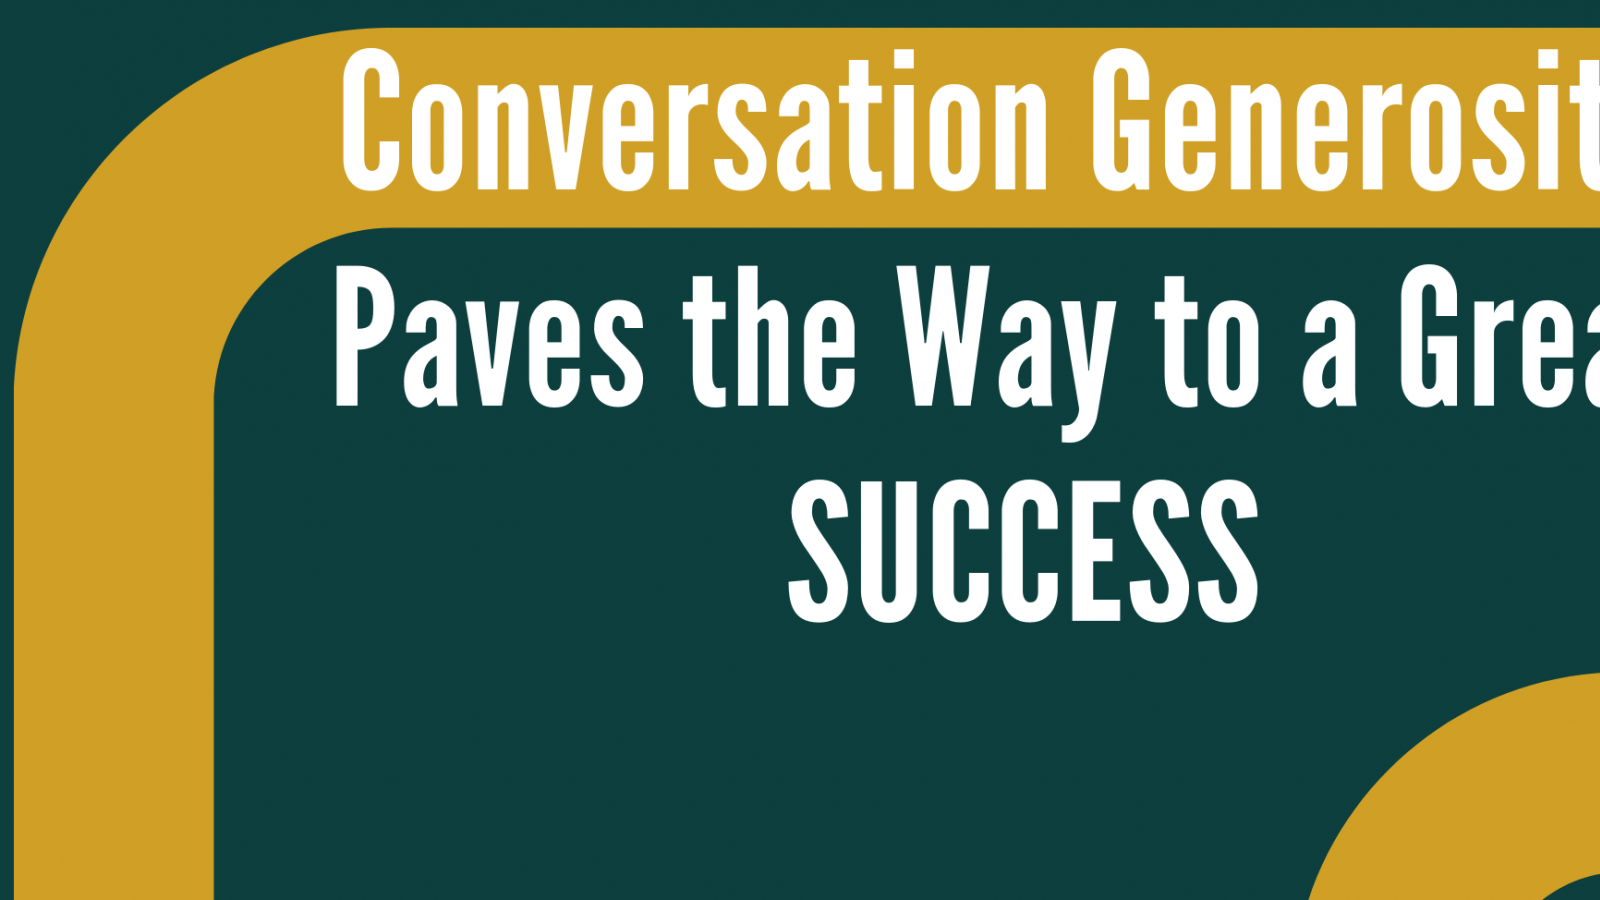 Conversation Generosity Paves the Way to a Great SUCCESS